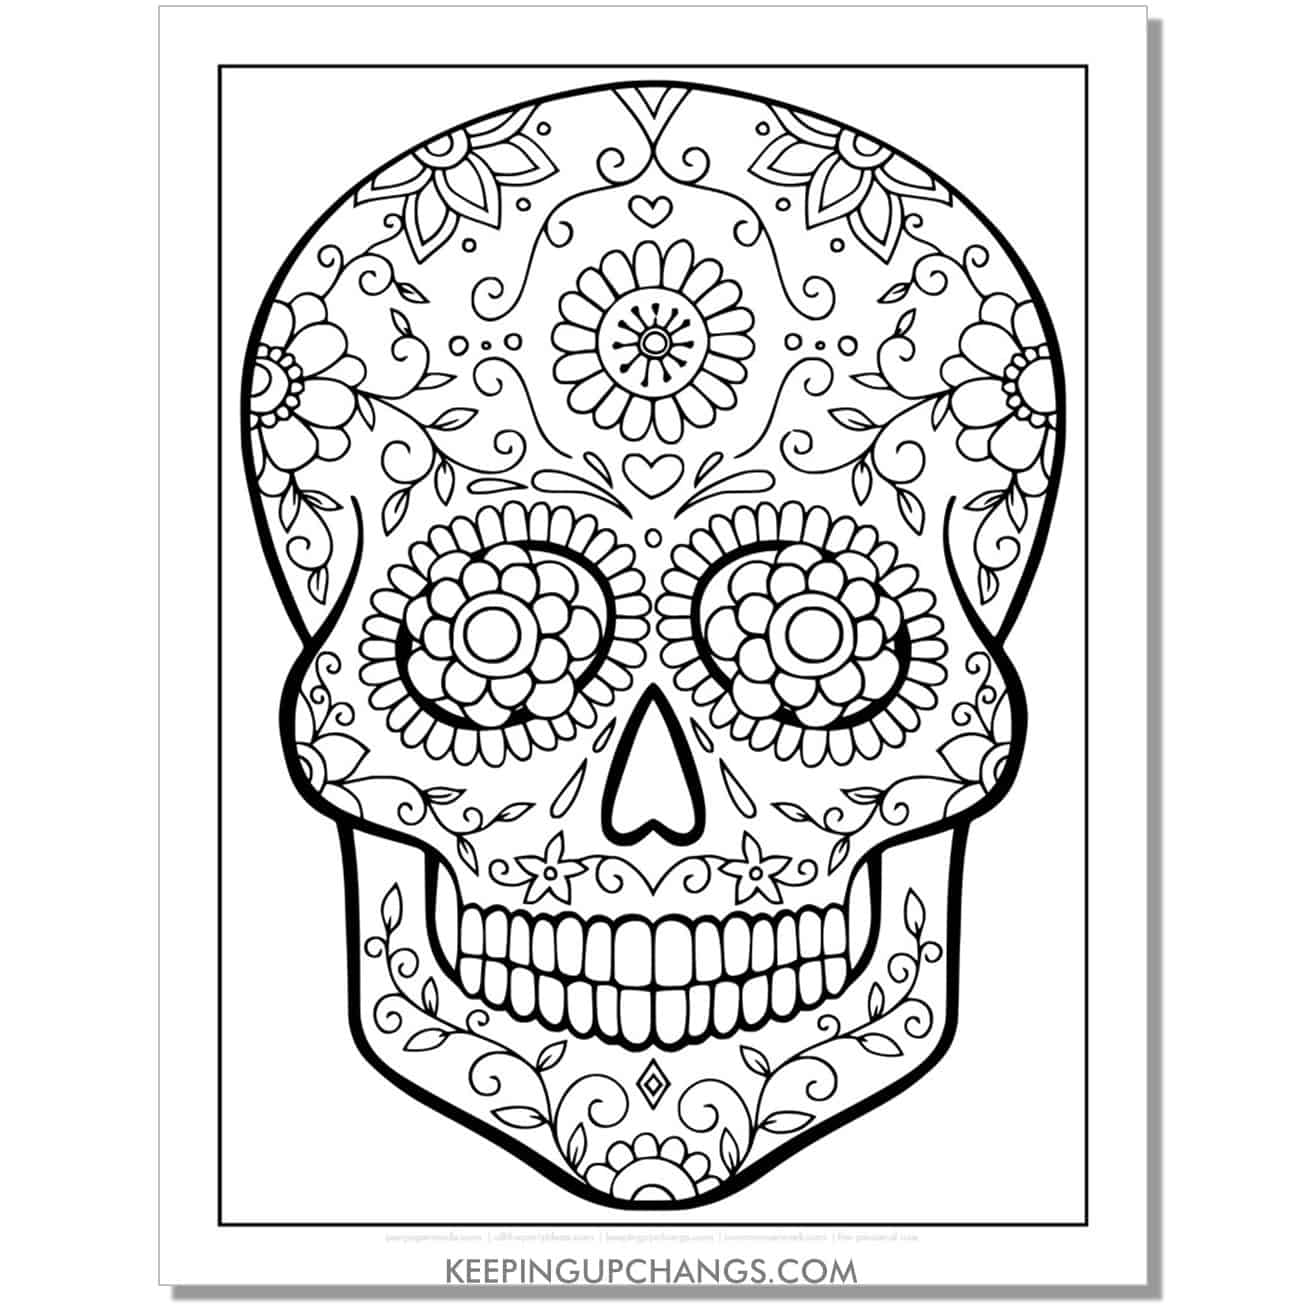 intermediate flower candy skull coloring page.